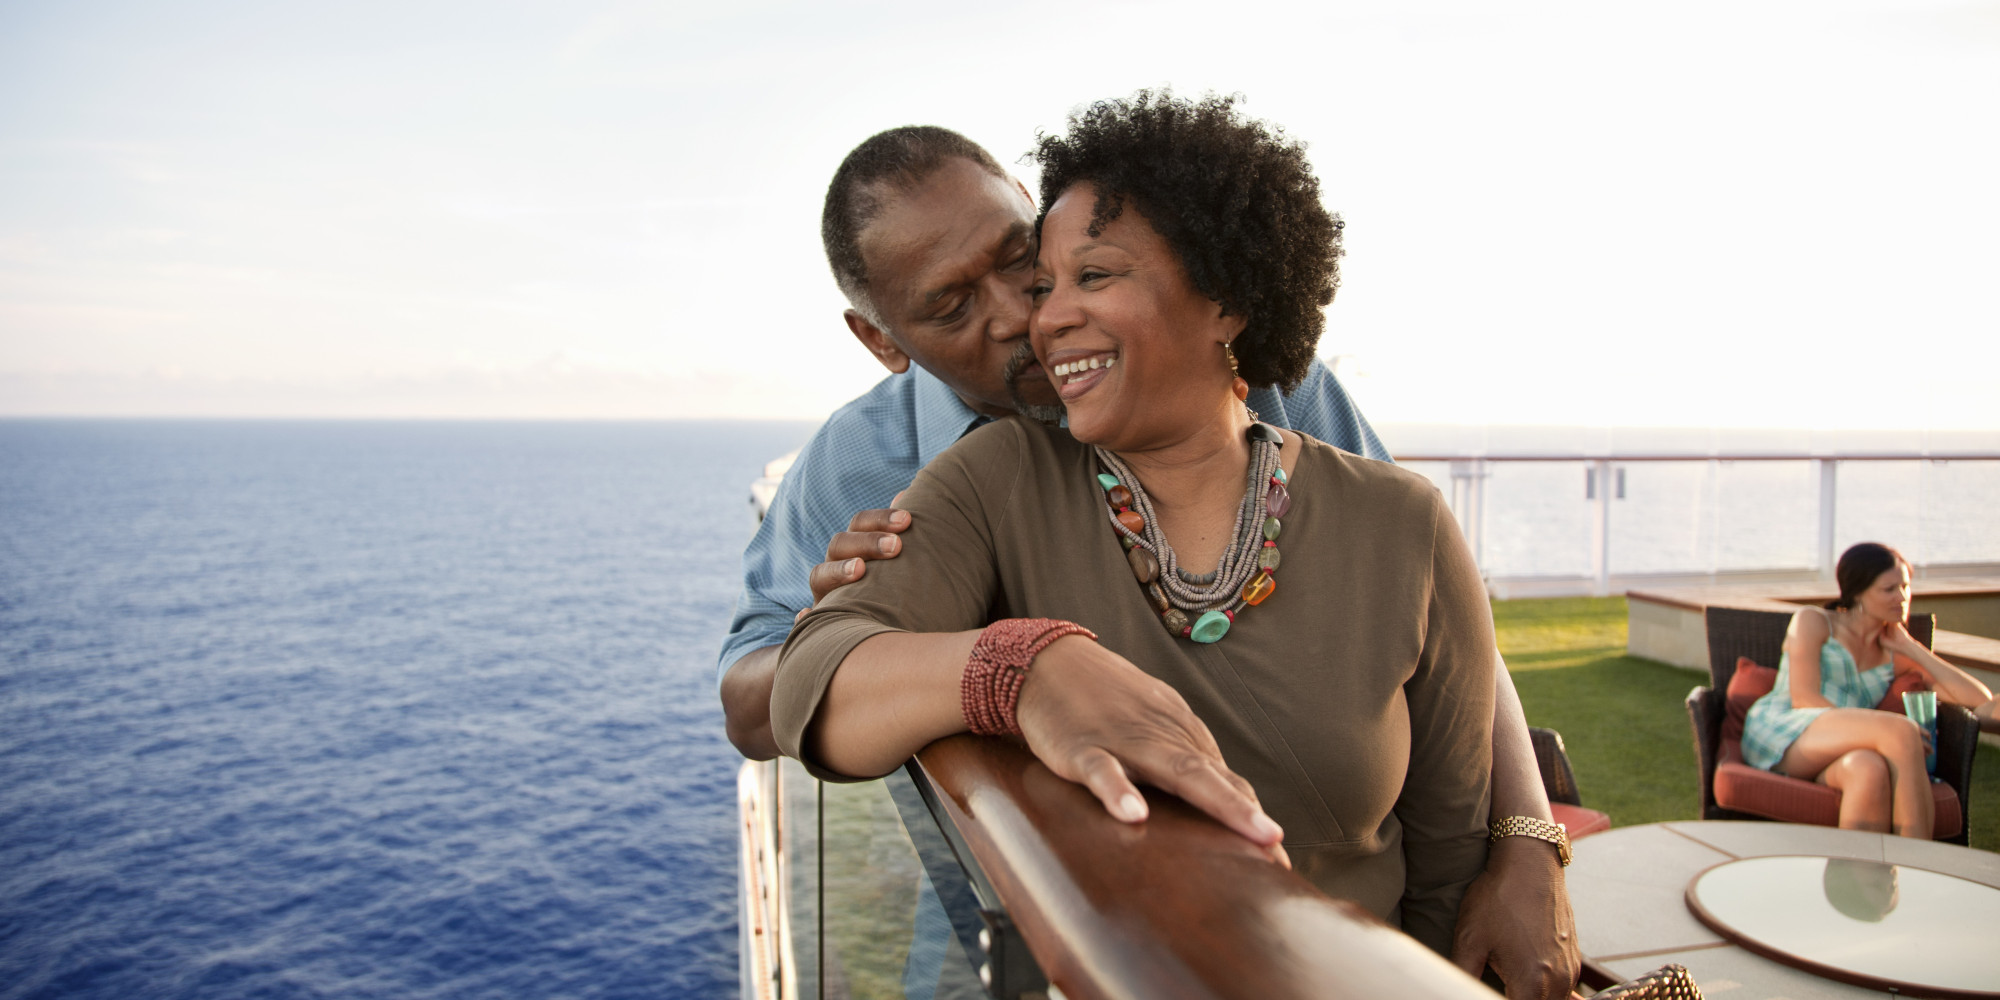 Top 10 Crazy Cruise Tips For Baby Boomers #7   HuffPost